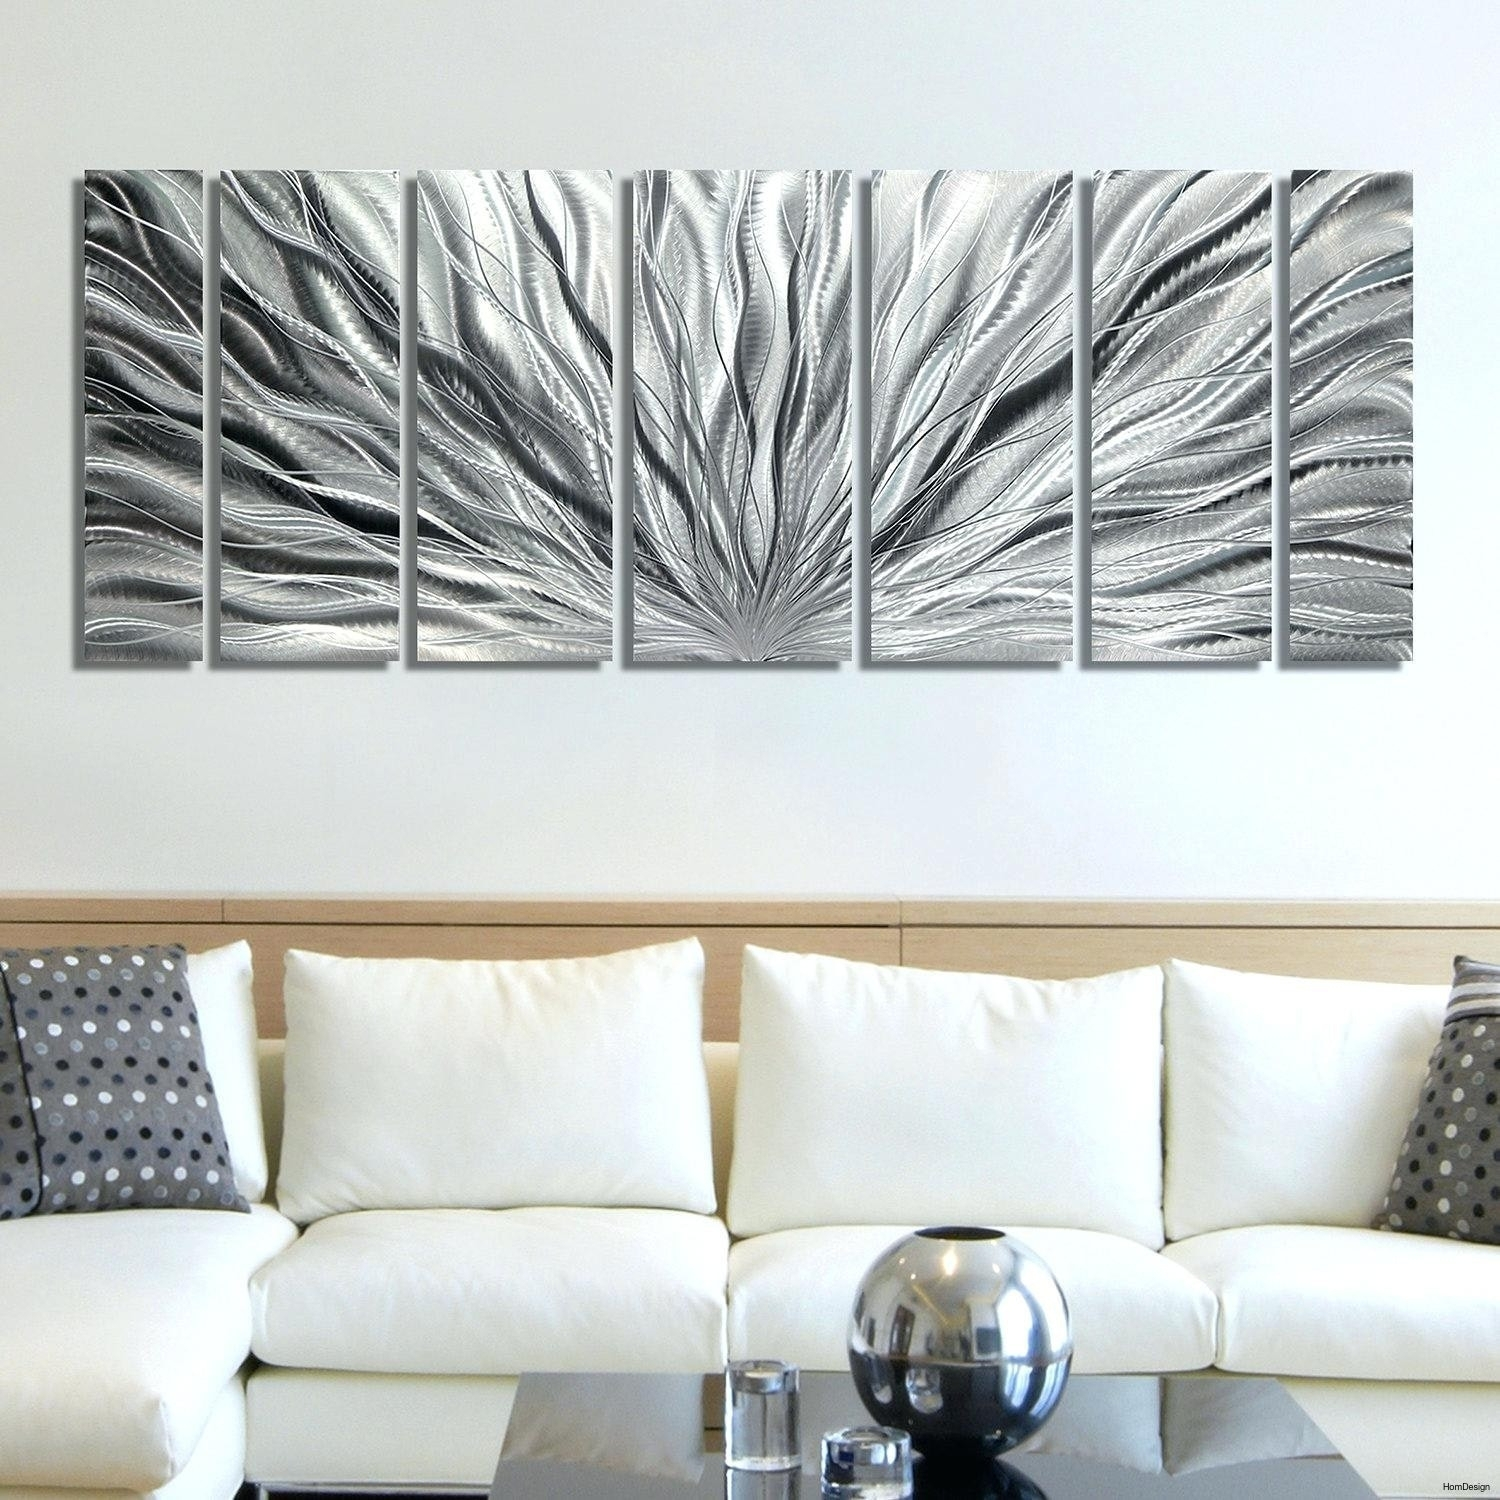 33 Awesome Decorative Wall Art Design Ideas Of Ross Wall Art | Wall Within Most Current Ross Wall Art (Gallery 14 of 20)